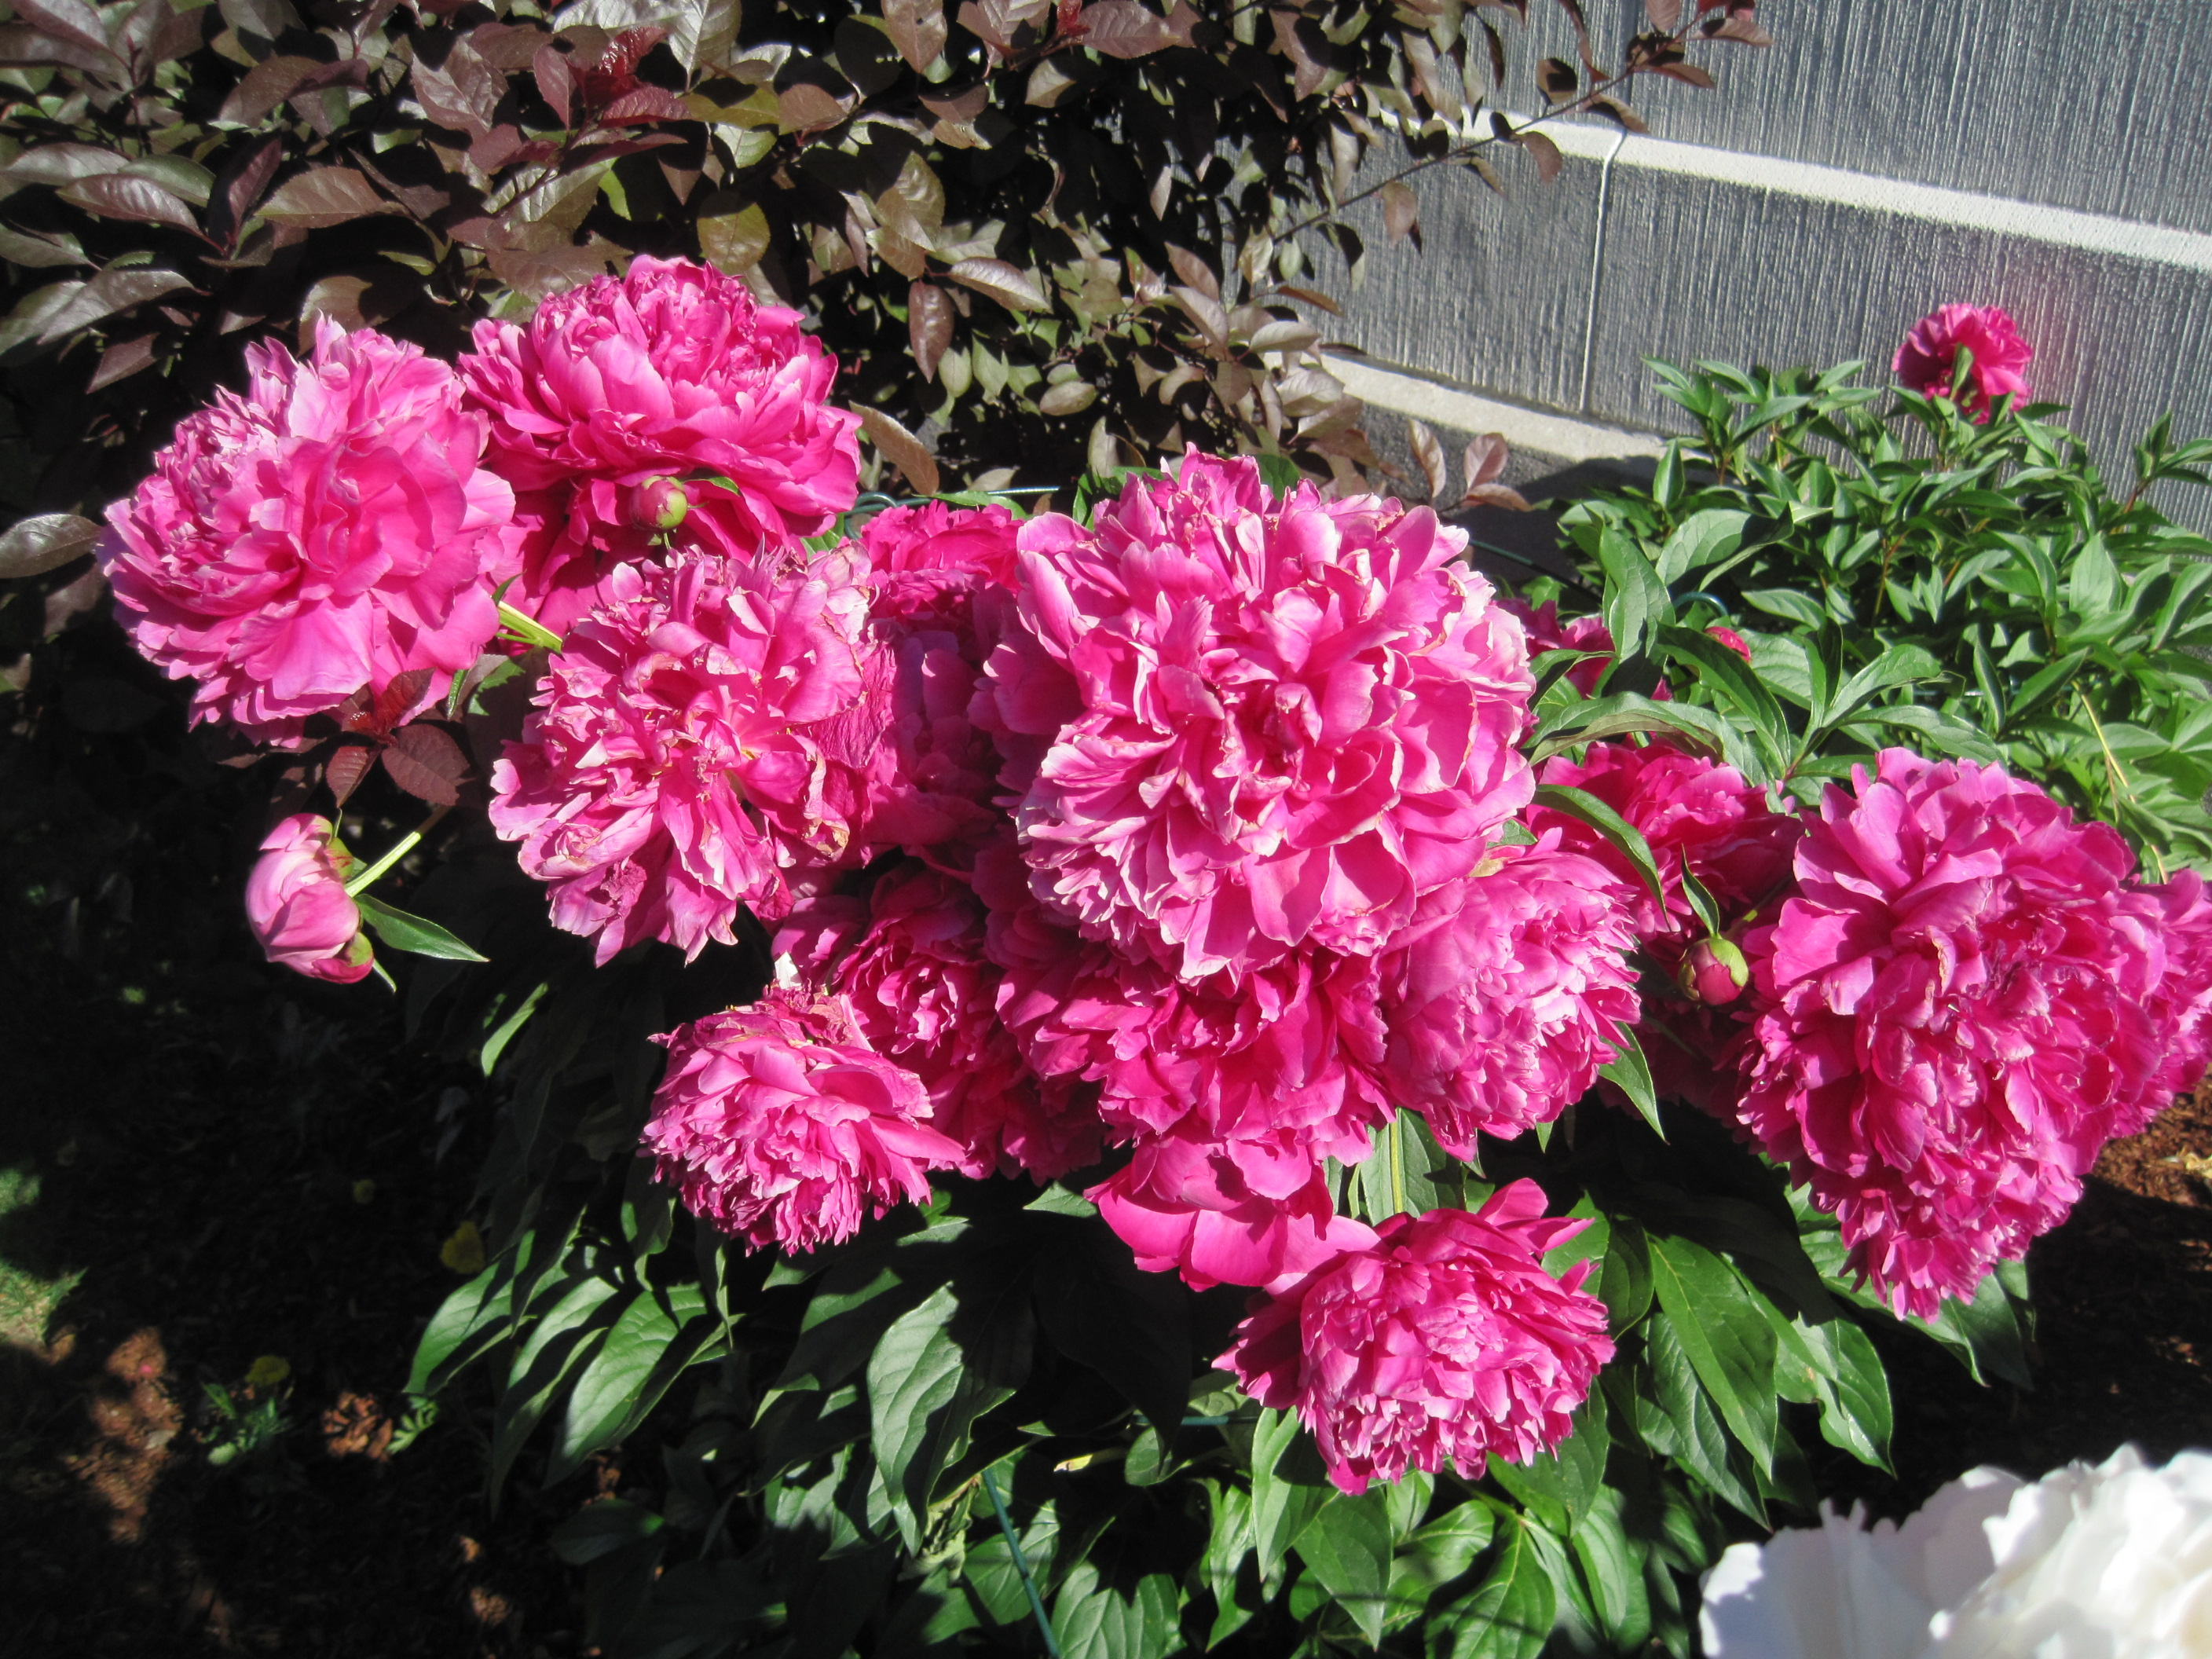 Peonies Season vermont peony season | matt-of-all-trades blog